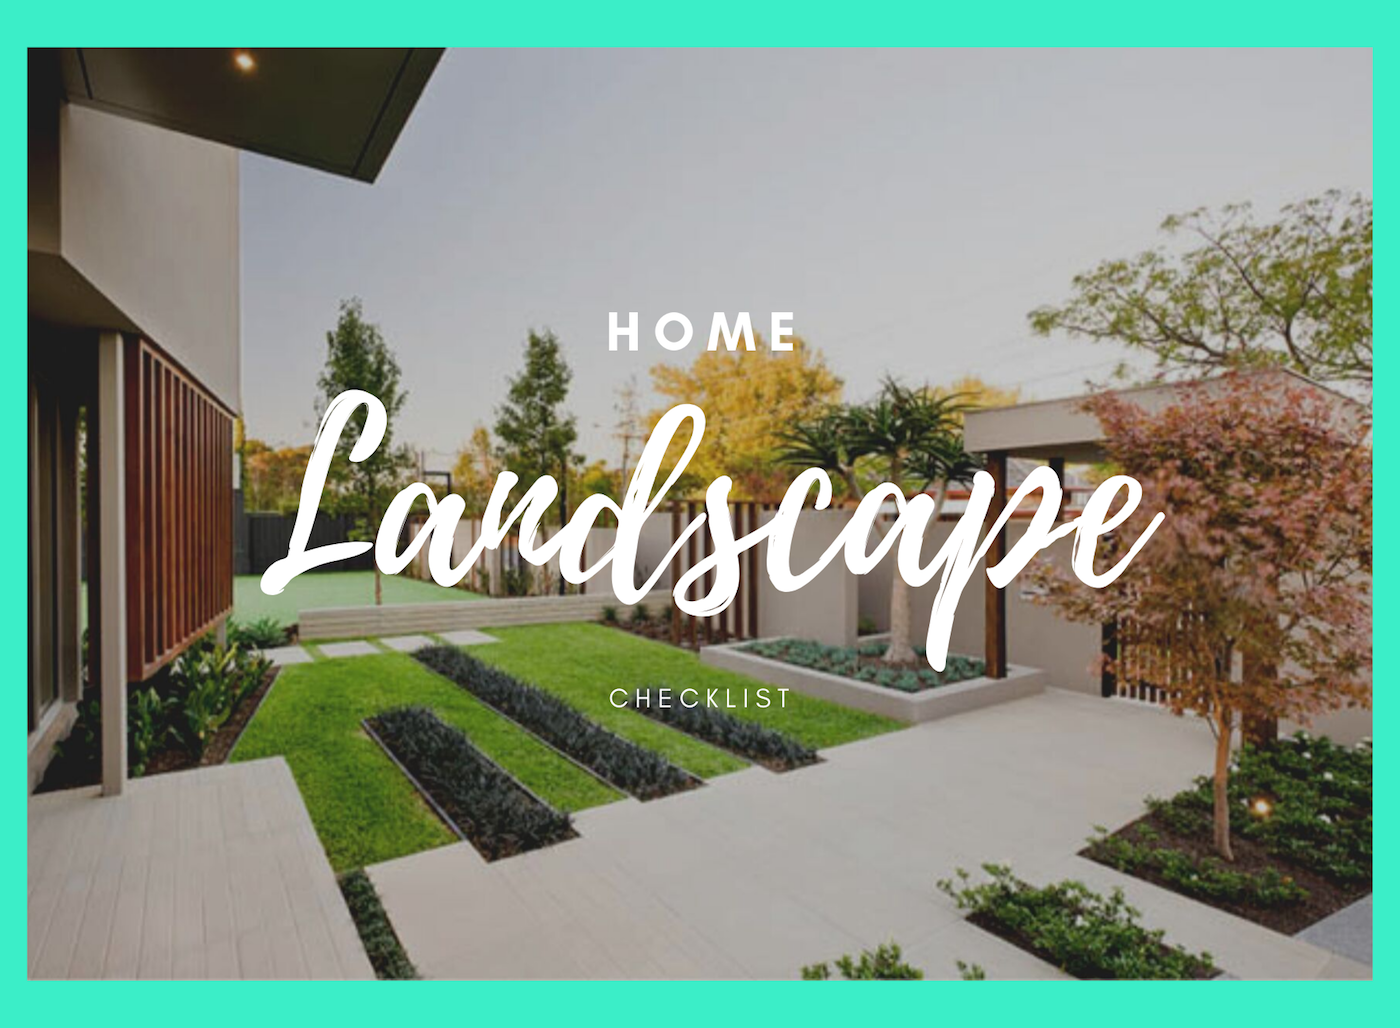 And the yard features green grass  with cement sidewalk and cement curbed mondo grass beds.  Also the brown modern fence encloses the yard.